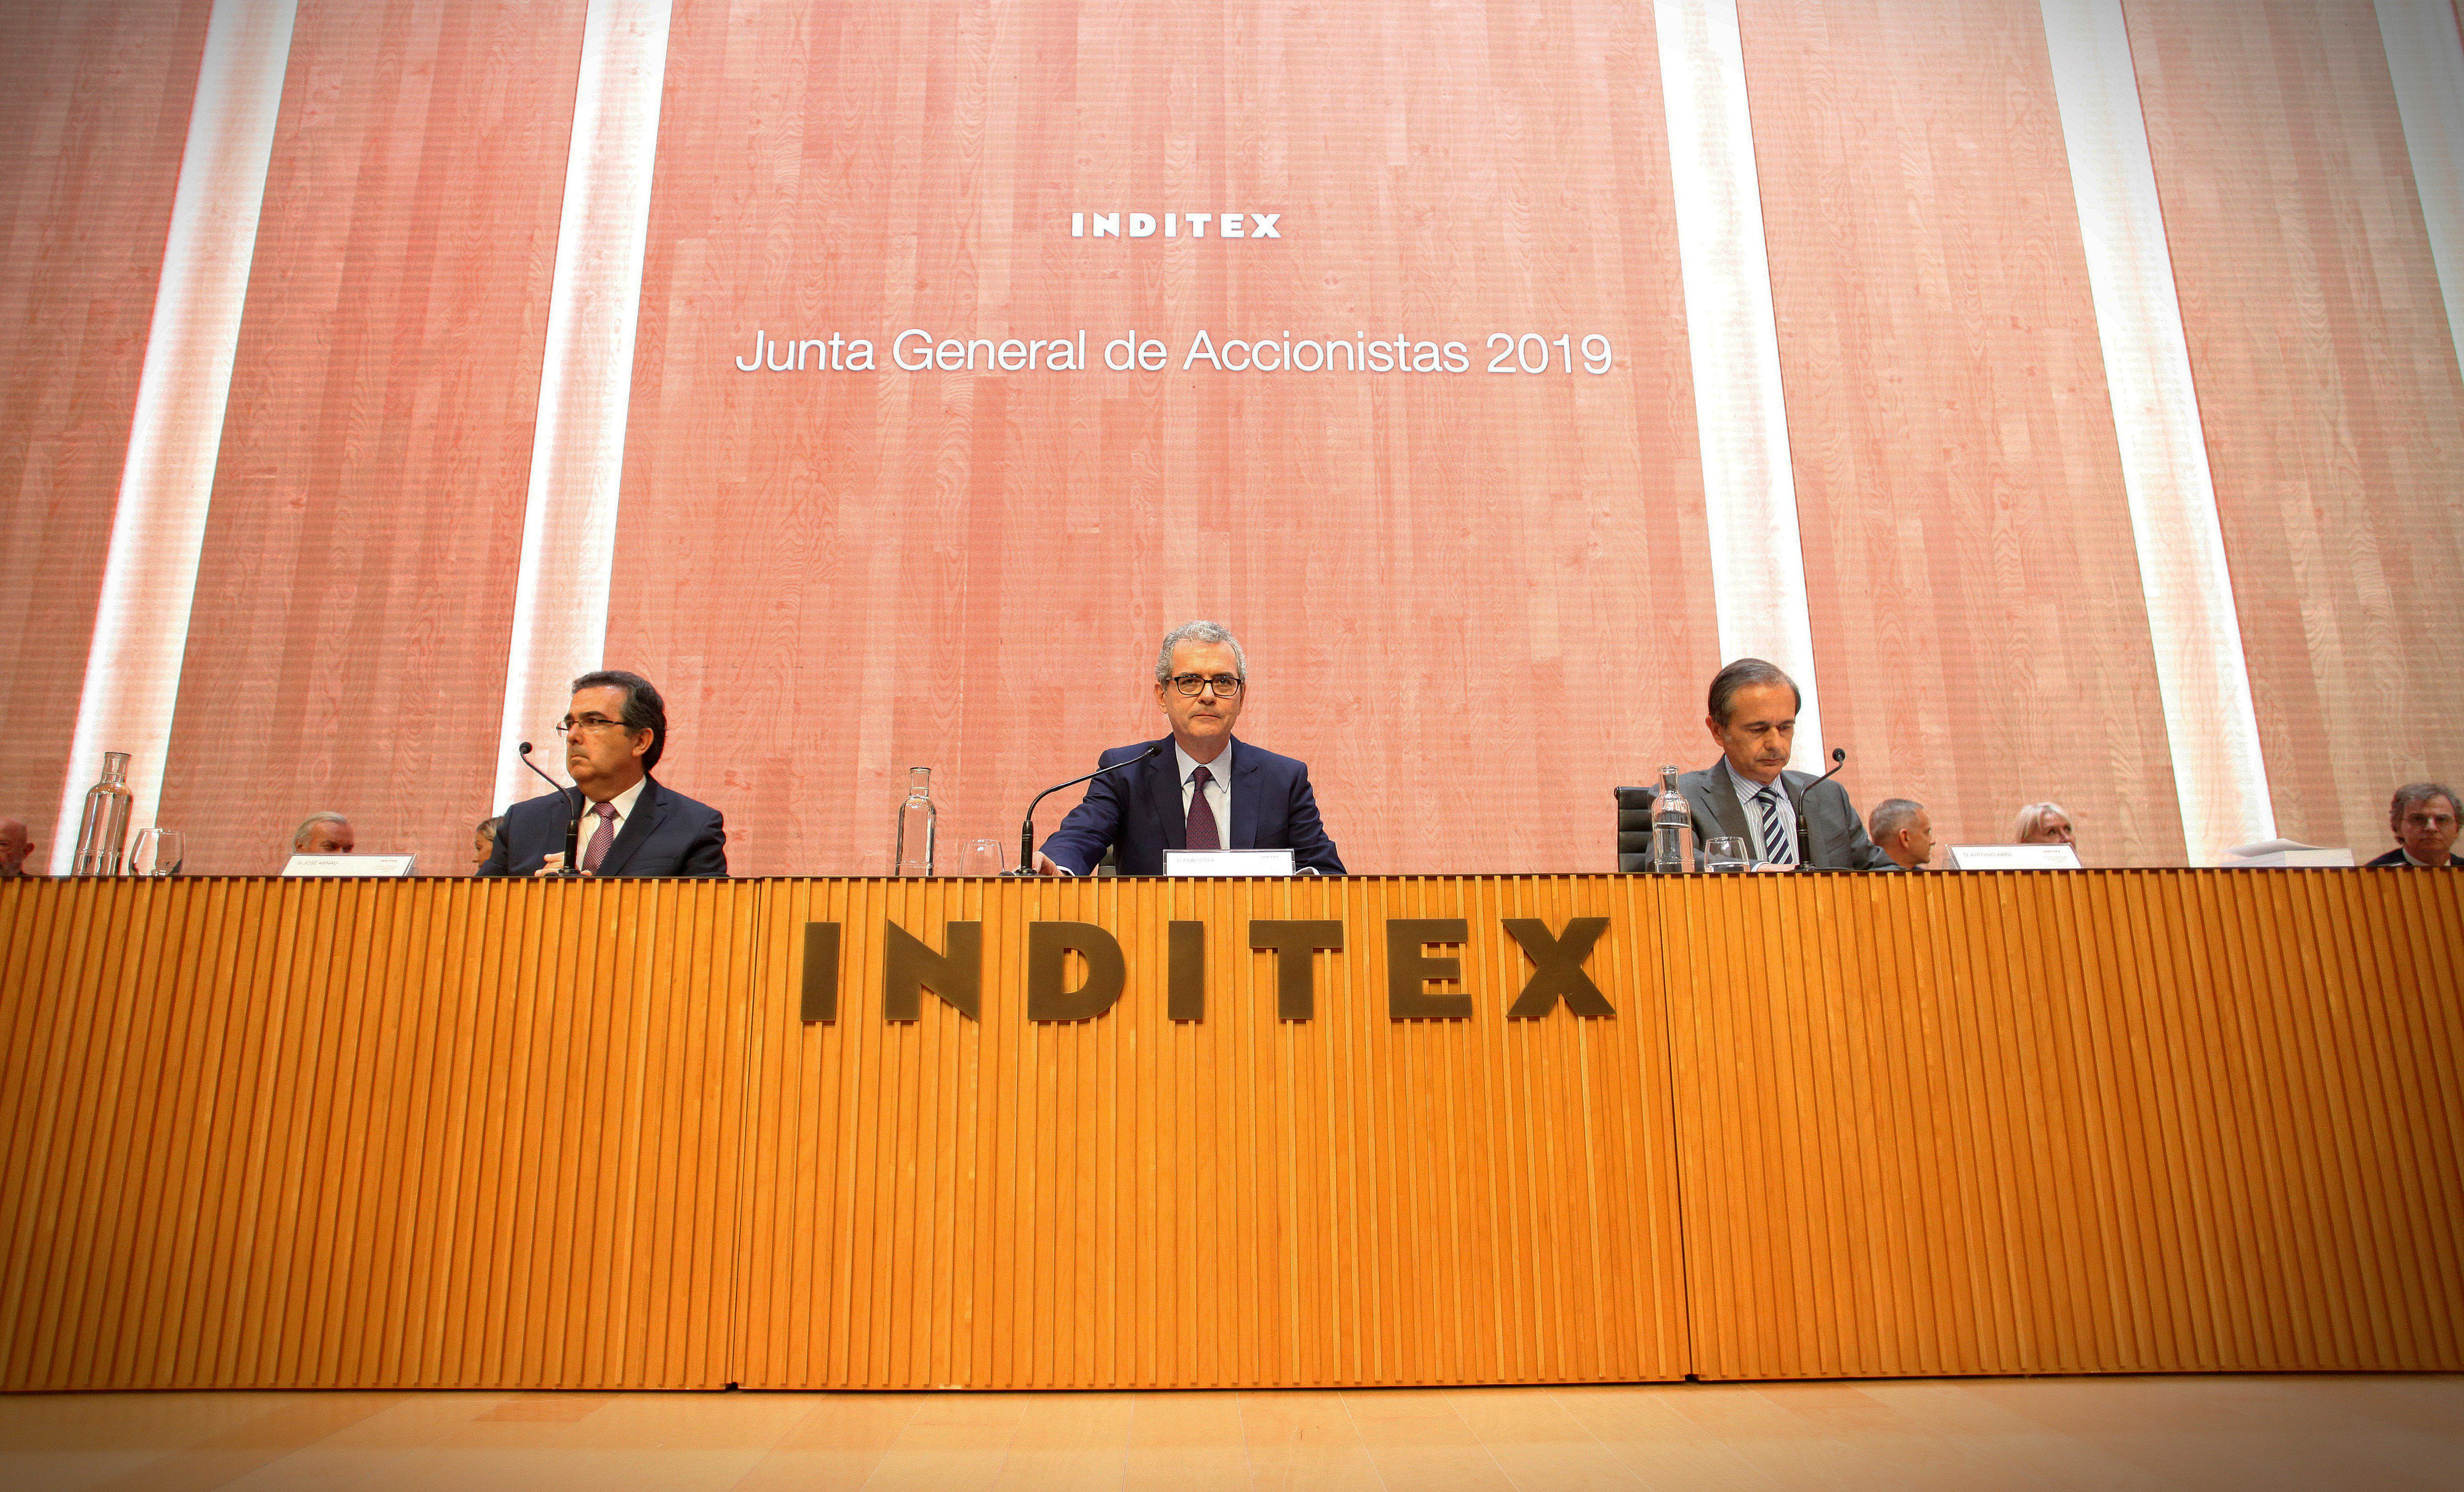 Spanish textile retail giant Inditex' Executive Chairman, Pablo Isla (C), chairs the general meeting of shareholders in the town of Arteixo, La Coruna, northwestern Spain, 16 July 2019